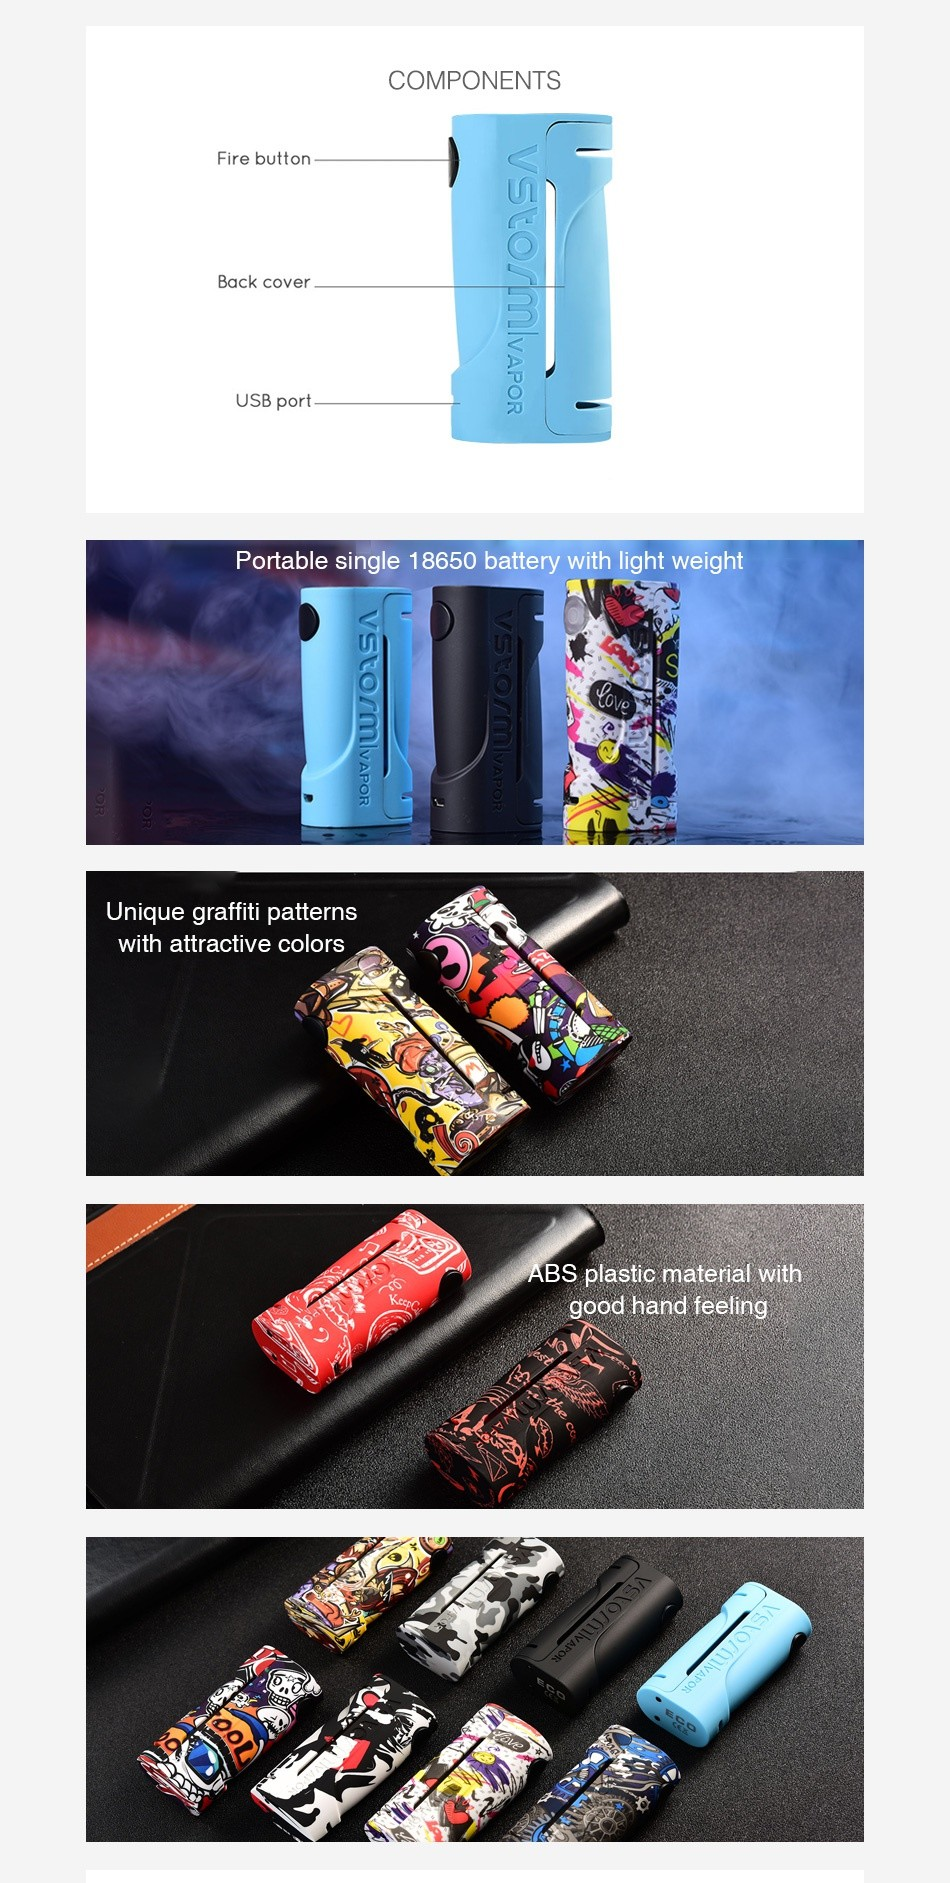 Vapor Storm ECO 90W Box MOD COMPONENTS Fire button Back cover USB port 0O  Portable single 18650 battery with light weight U Unique graffiti patterns ith attractive colors BS plastic material with good hand feeling